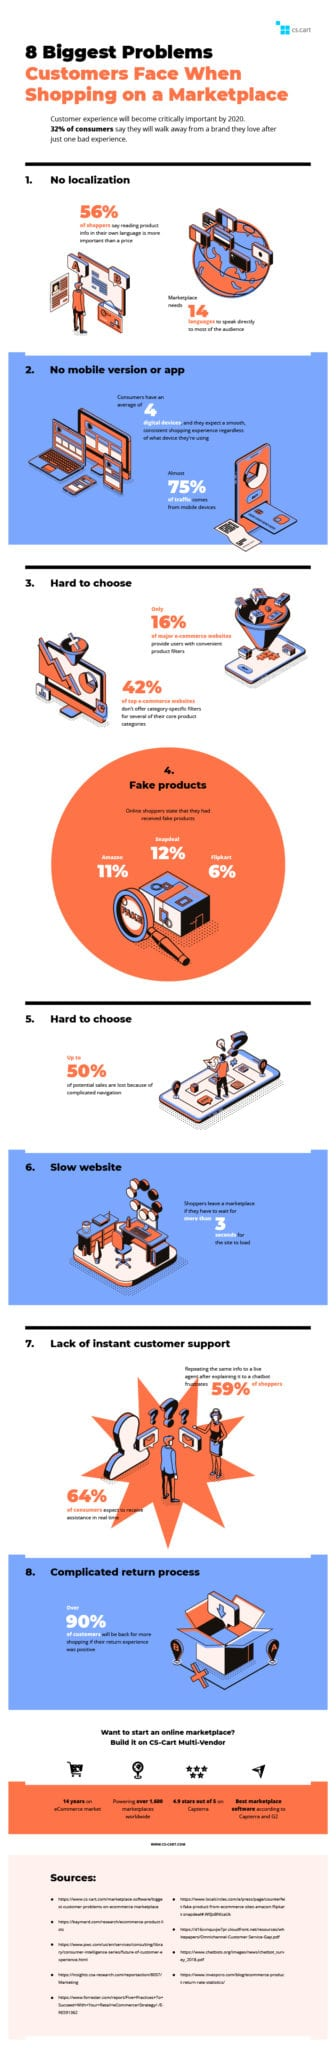 8 Biggest Problems Customers Face on Online Marketplaces